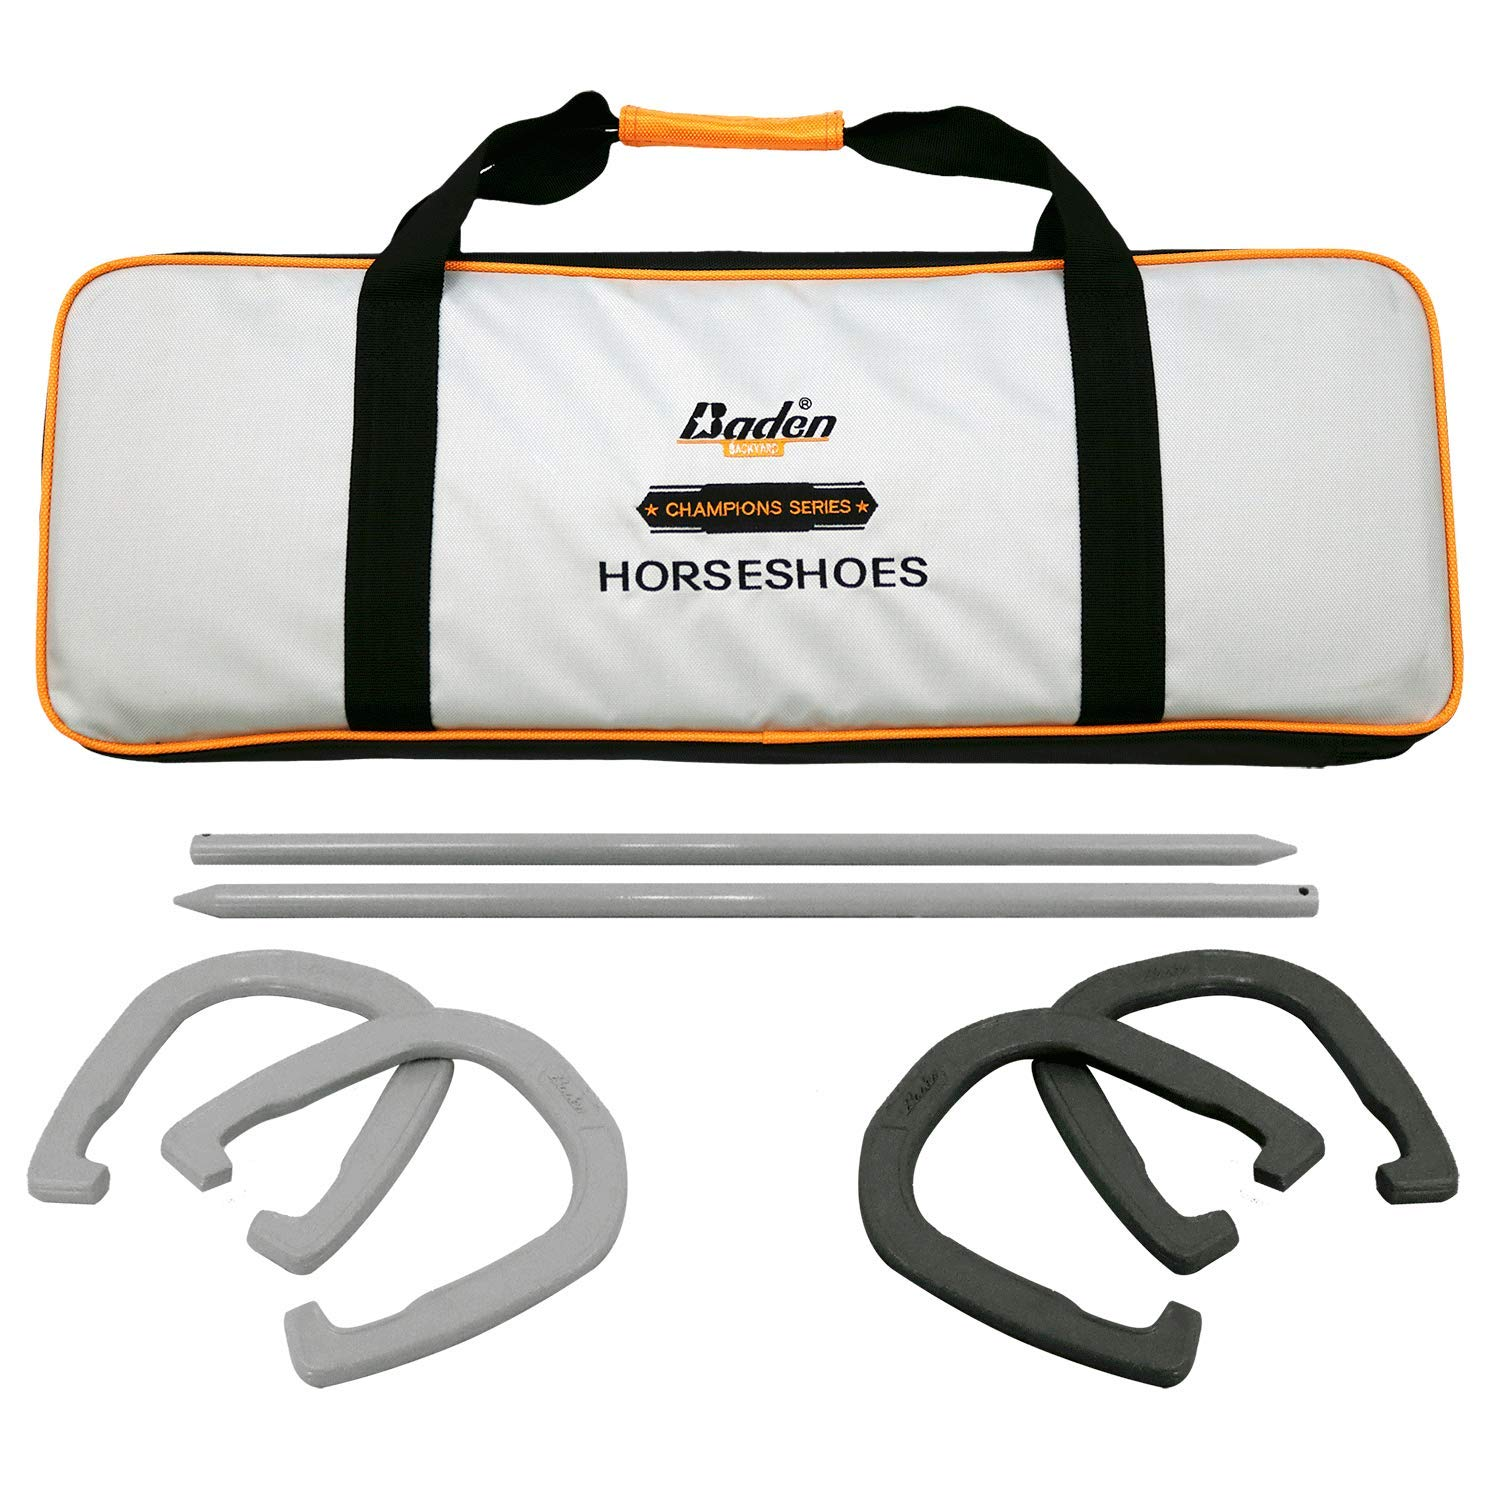 Baden Champions Horseshoe Set- Tournament Quality Forged Steel Construction